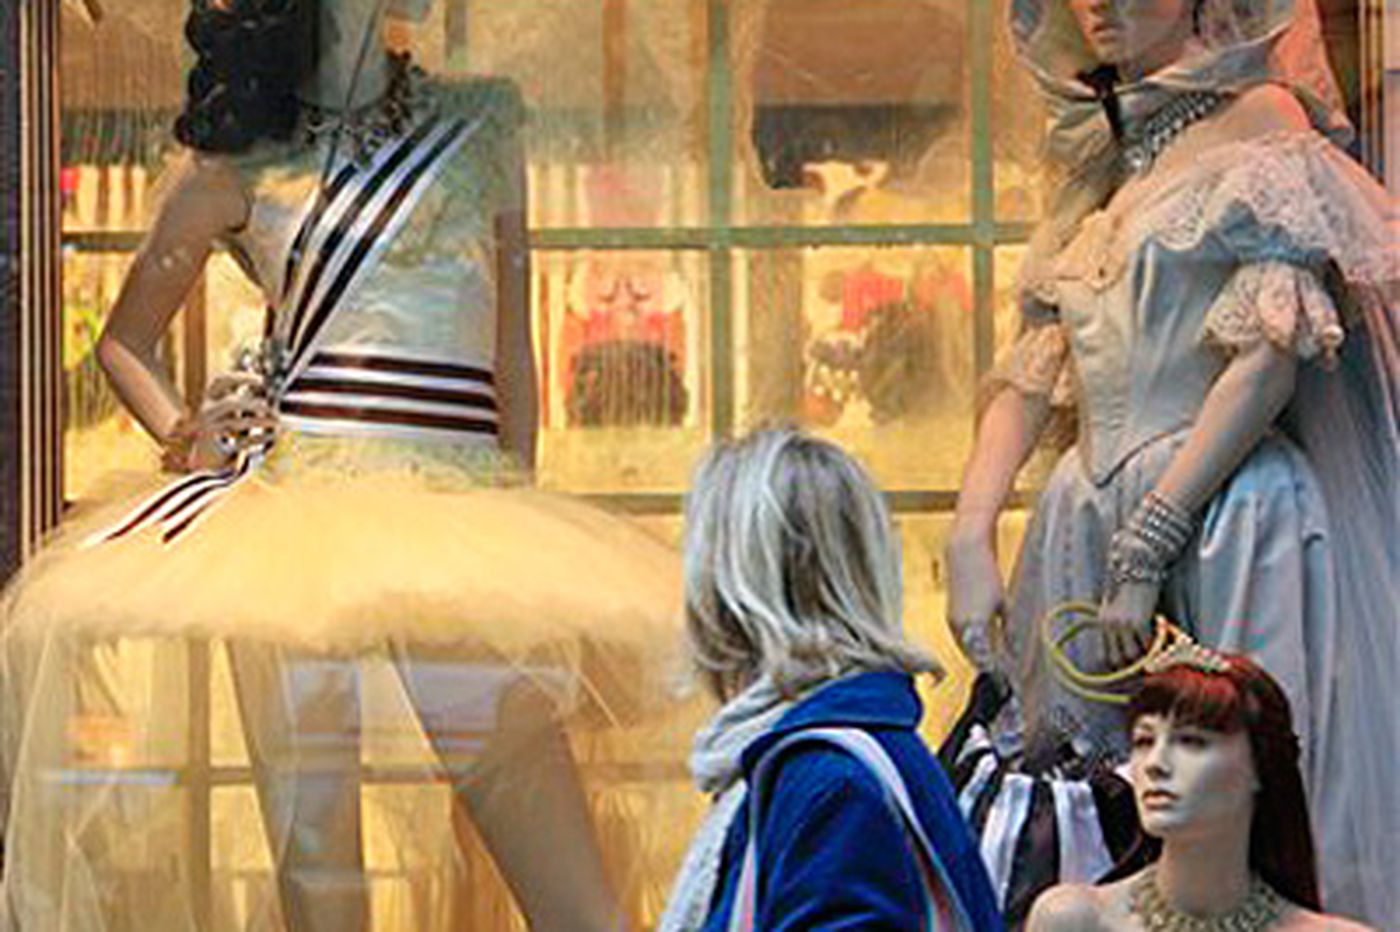 NYC store holiday windows from tech to traditional